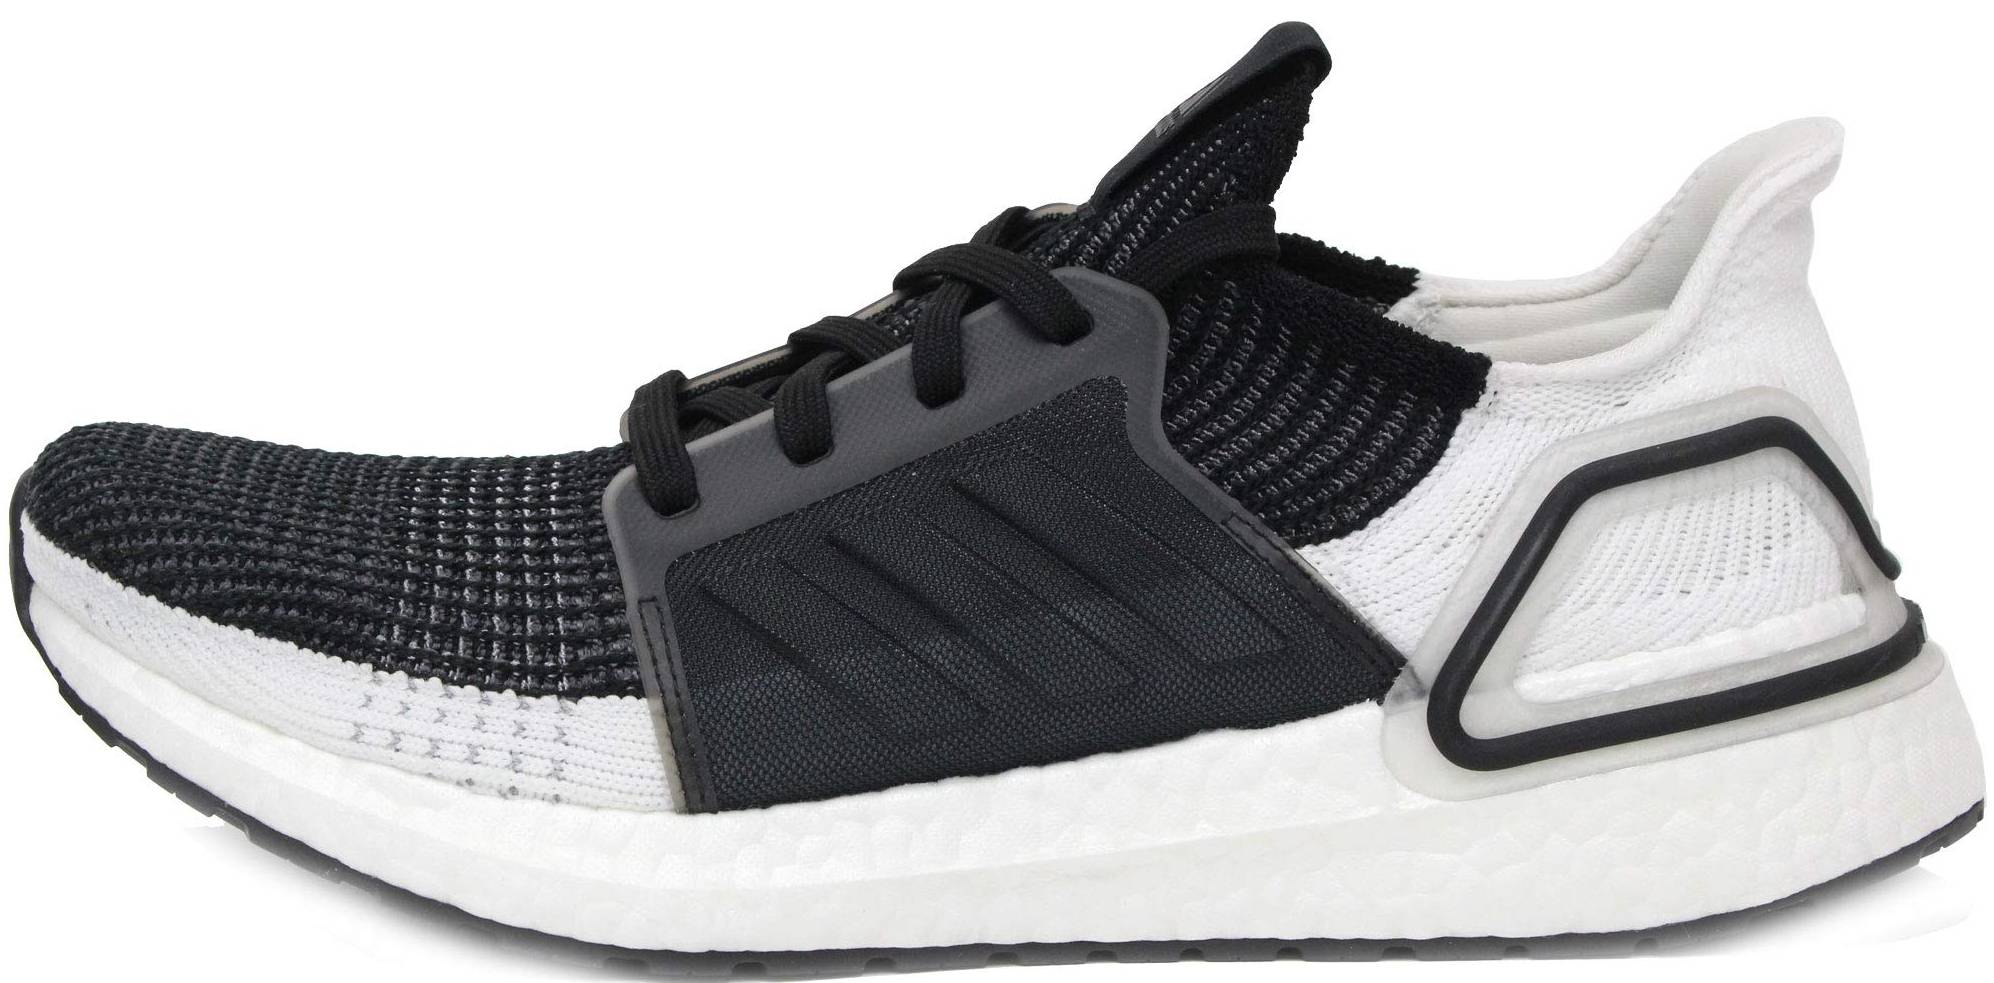 excusa Ortodoxo Perceptible  Adidas Ultraboost 19 - Deals ($72), Facts, Reviews (2021) | RunRepeat